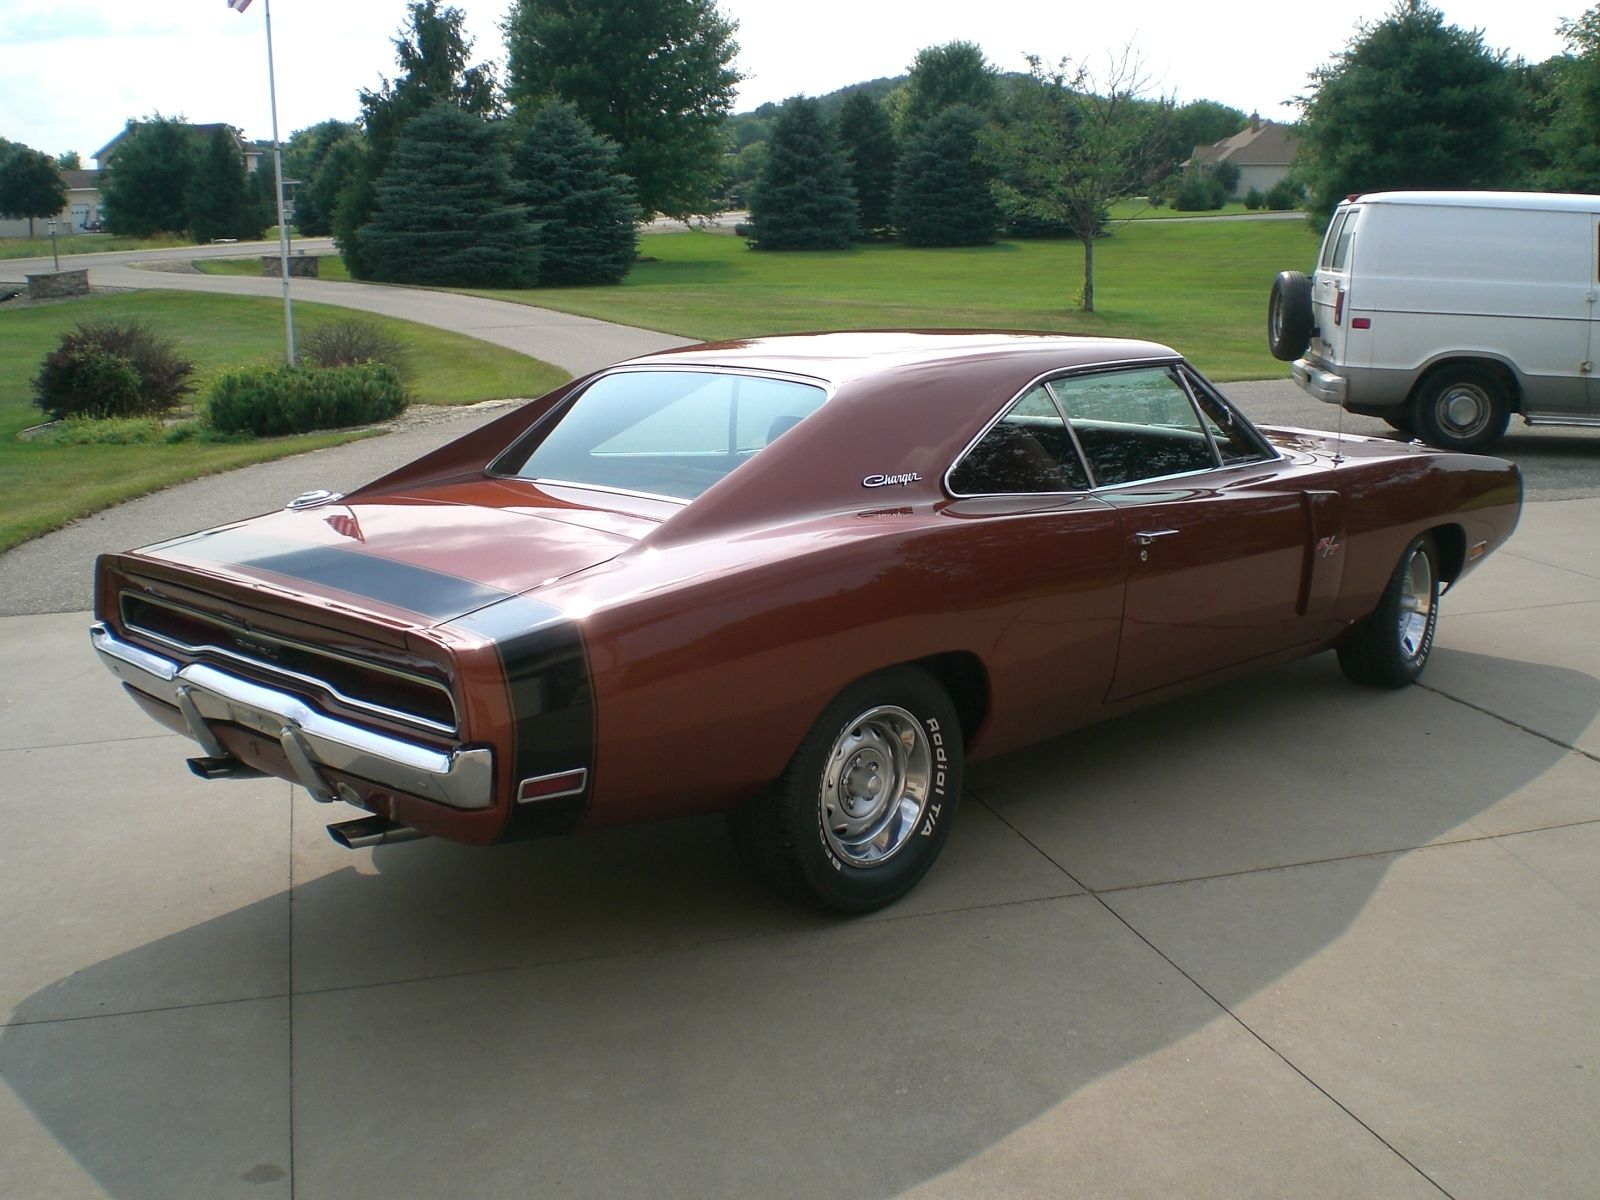 1970 dodge charger r t matching 440 4 speed dana with 60 rear end muscle car. Black Bedroom Furniture Sets. Home Design Ideas